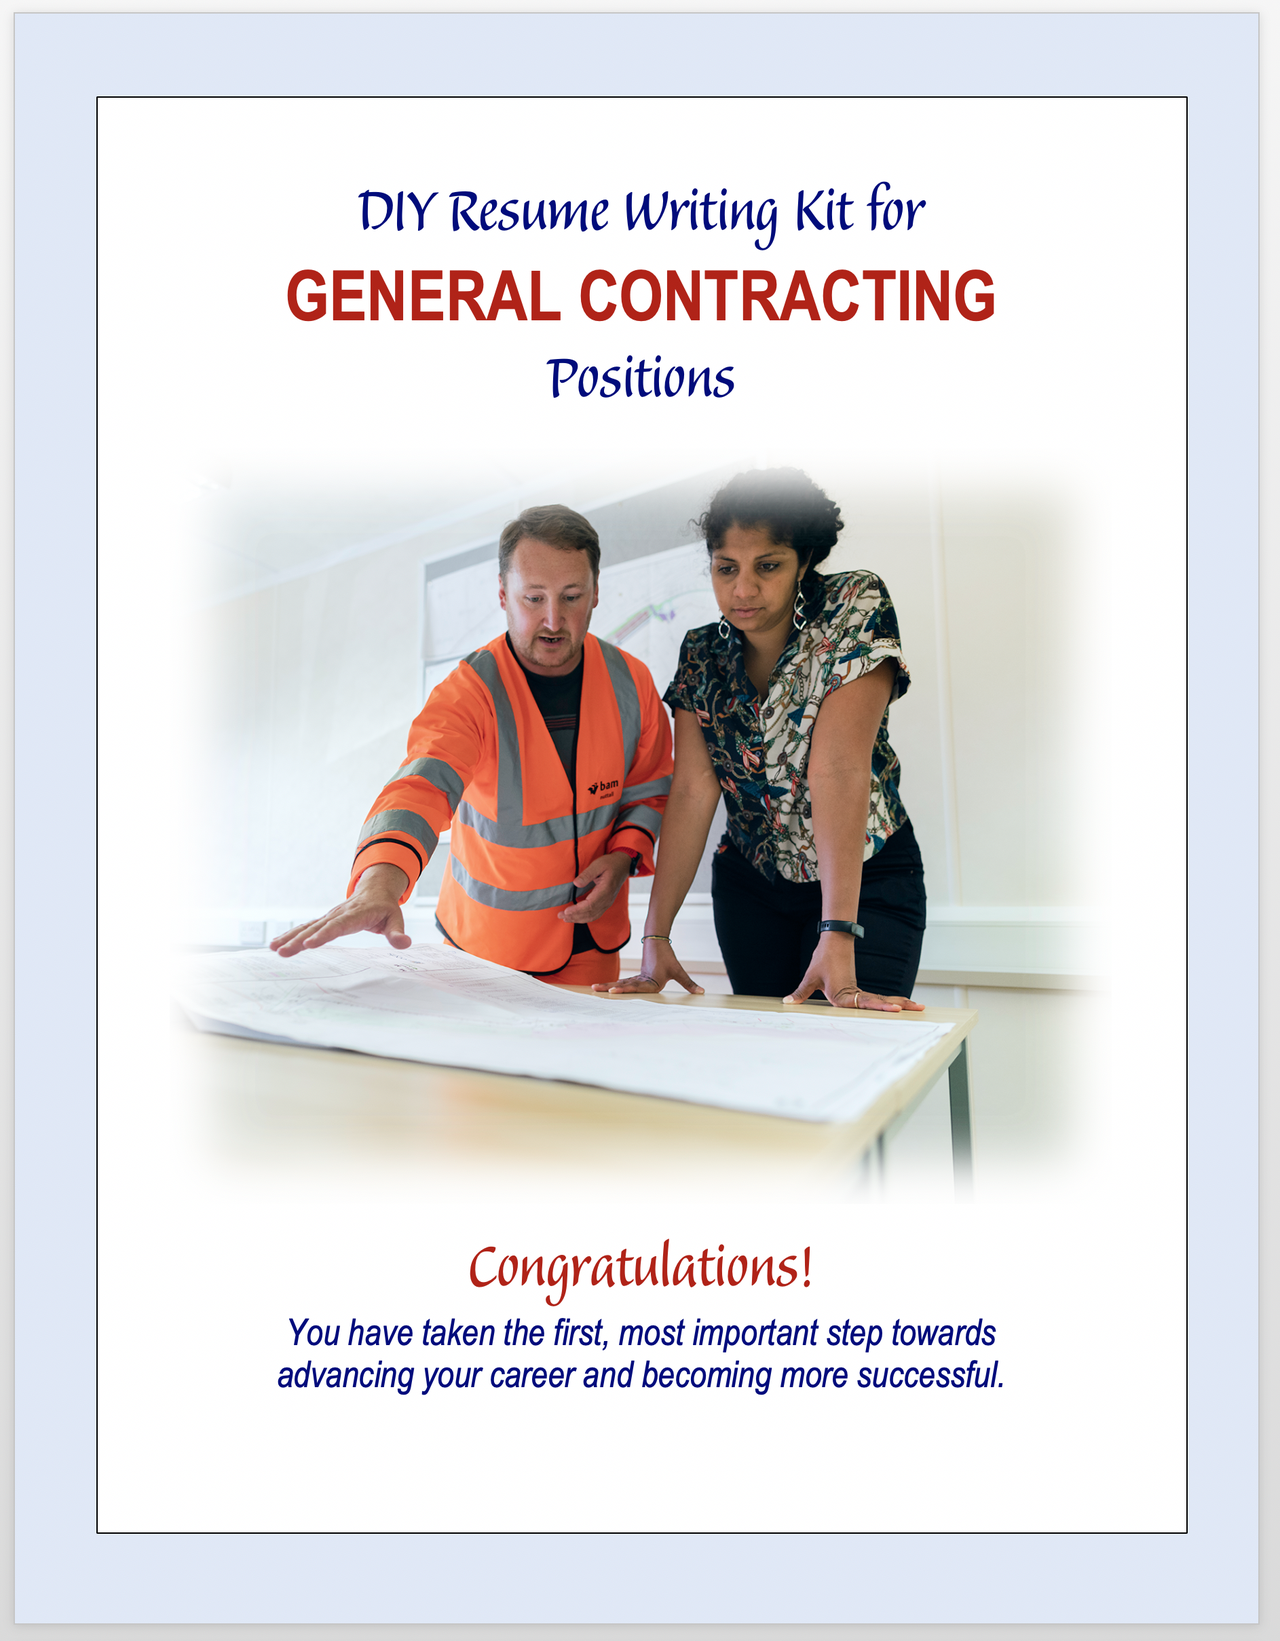 general contracting.png